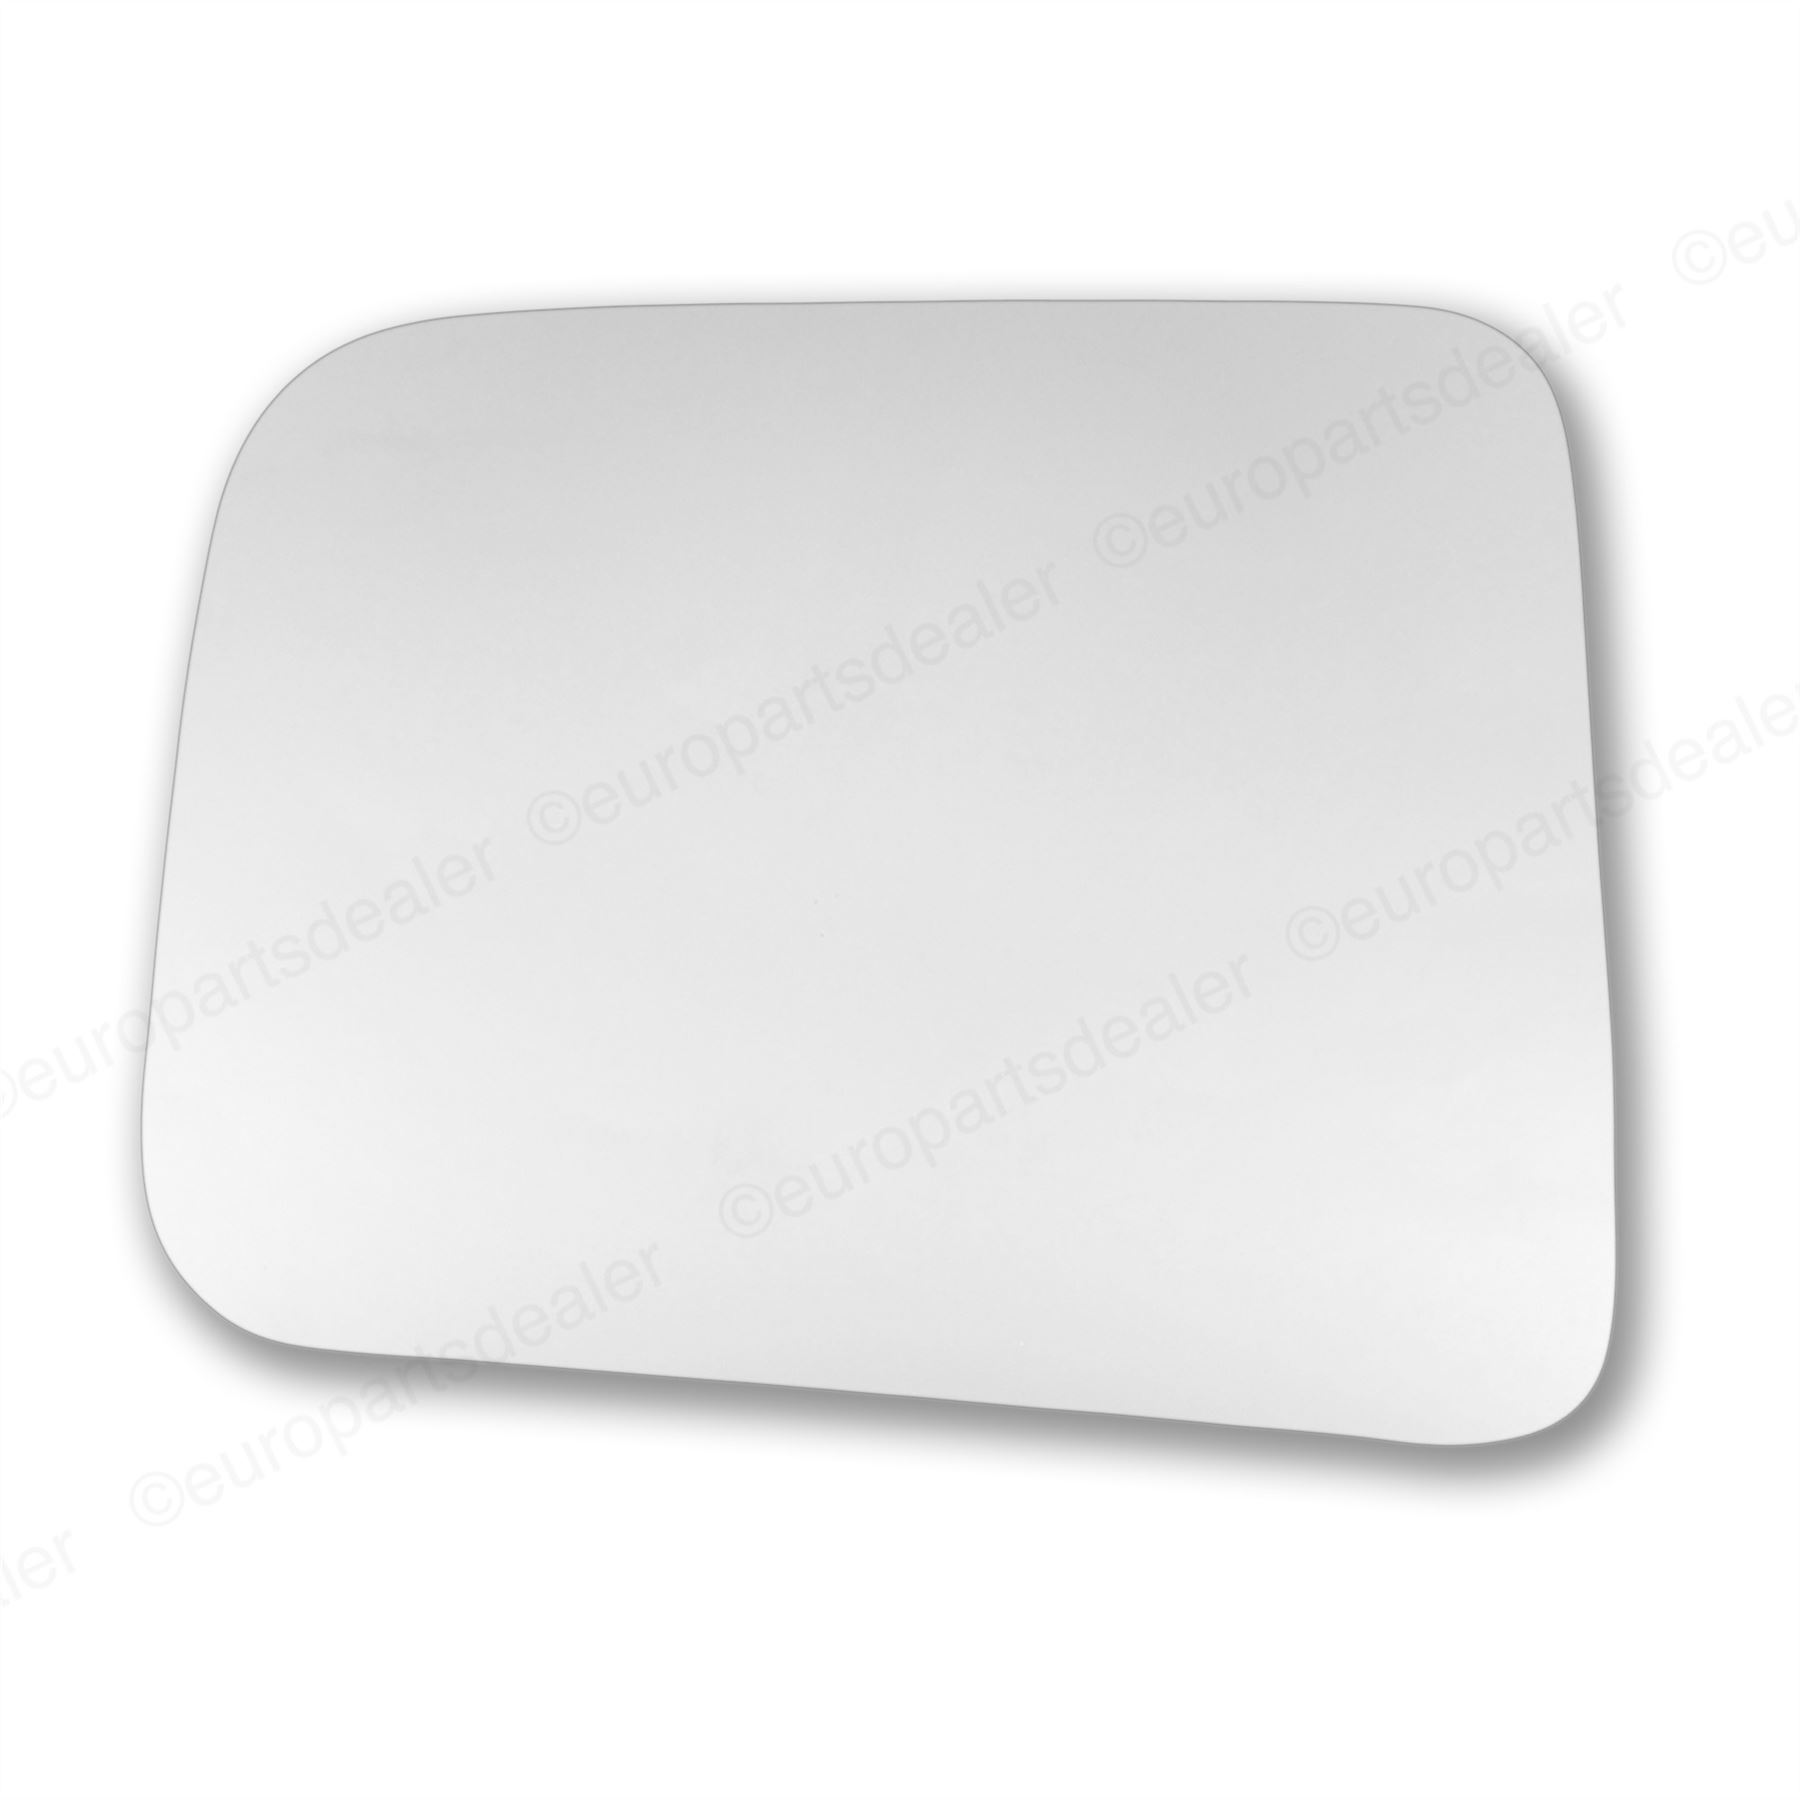 RENAULT TRAFIC 2001 REPLACEMENT WING MIRROR GLASS FLAT PLATE  RIGHT OR LEFT